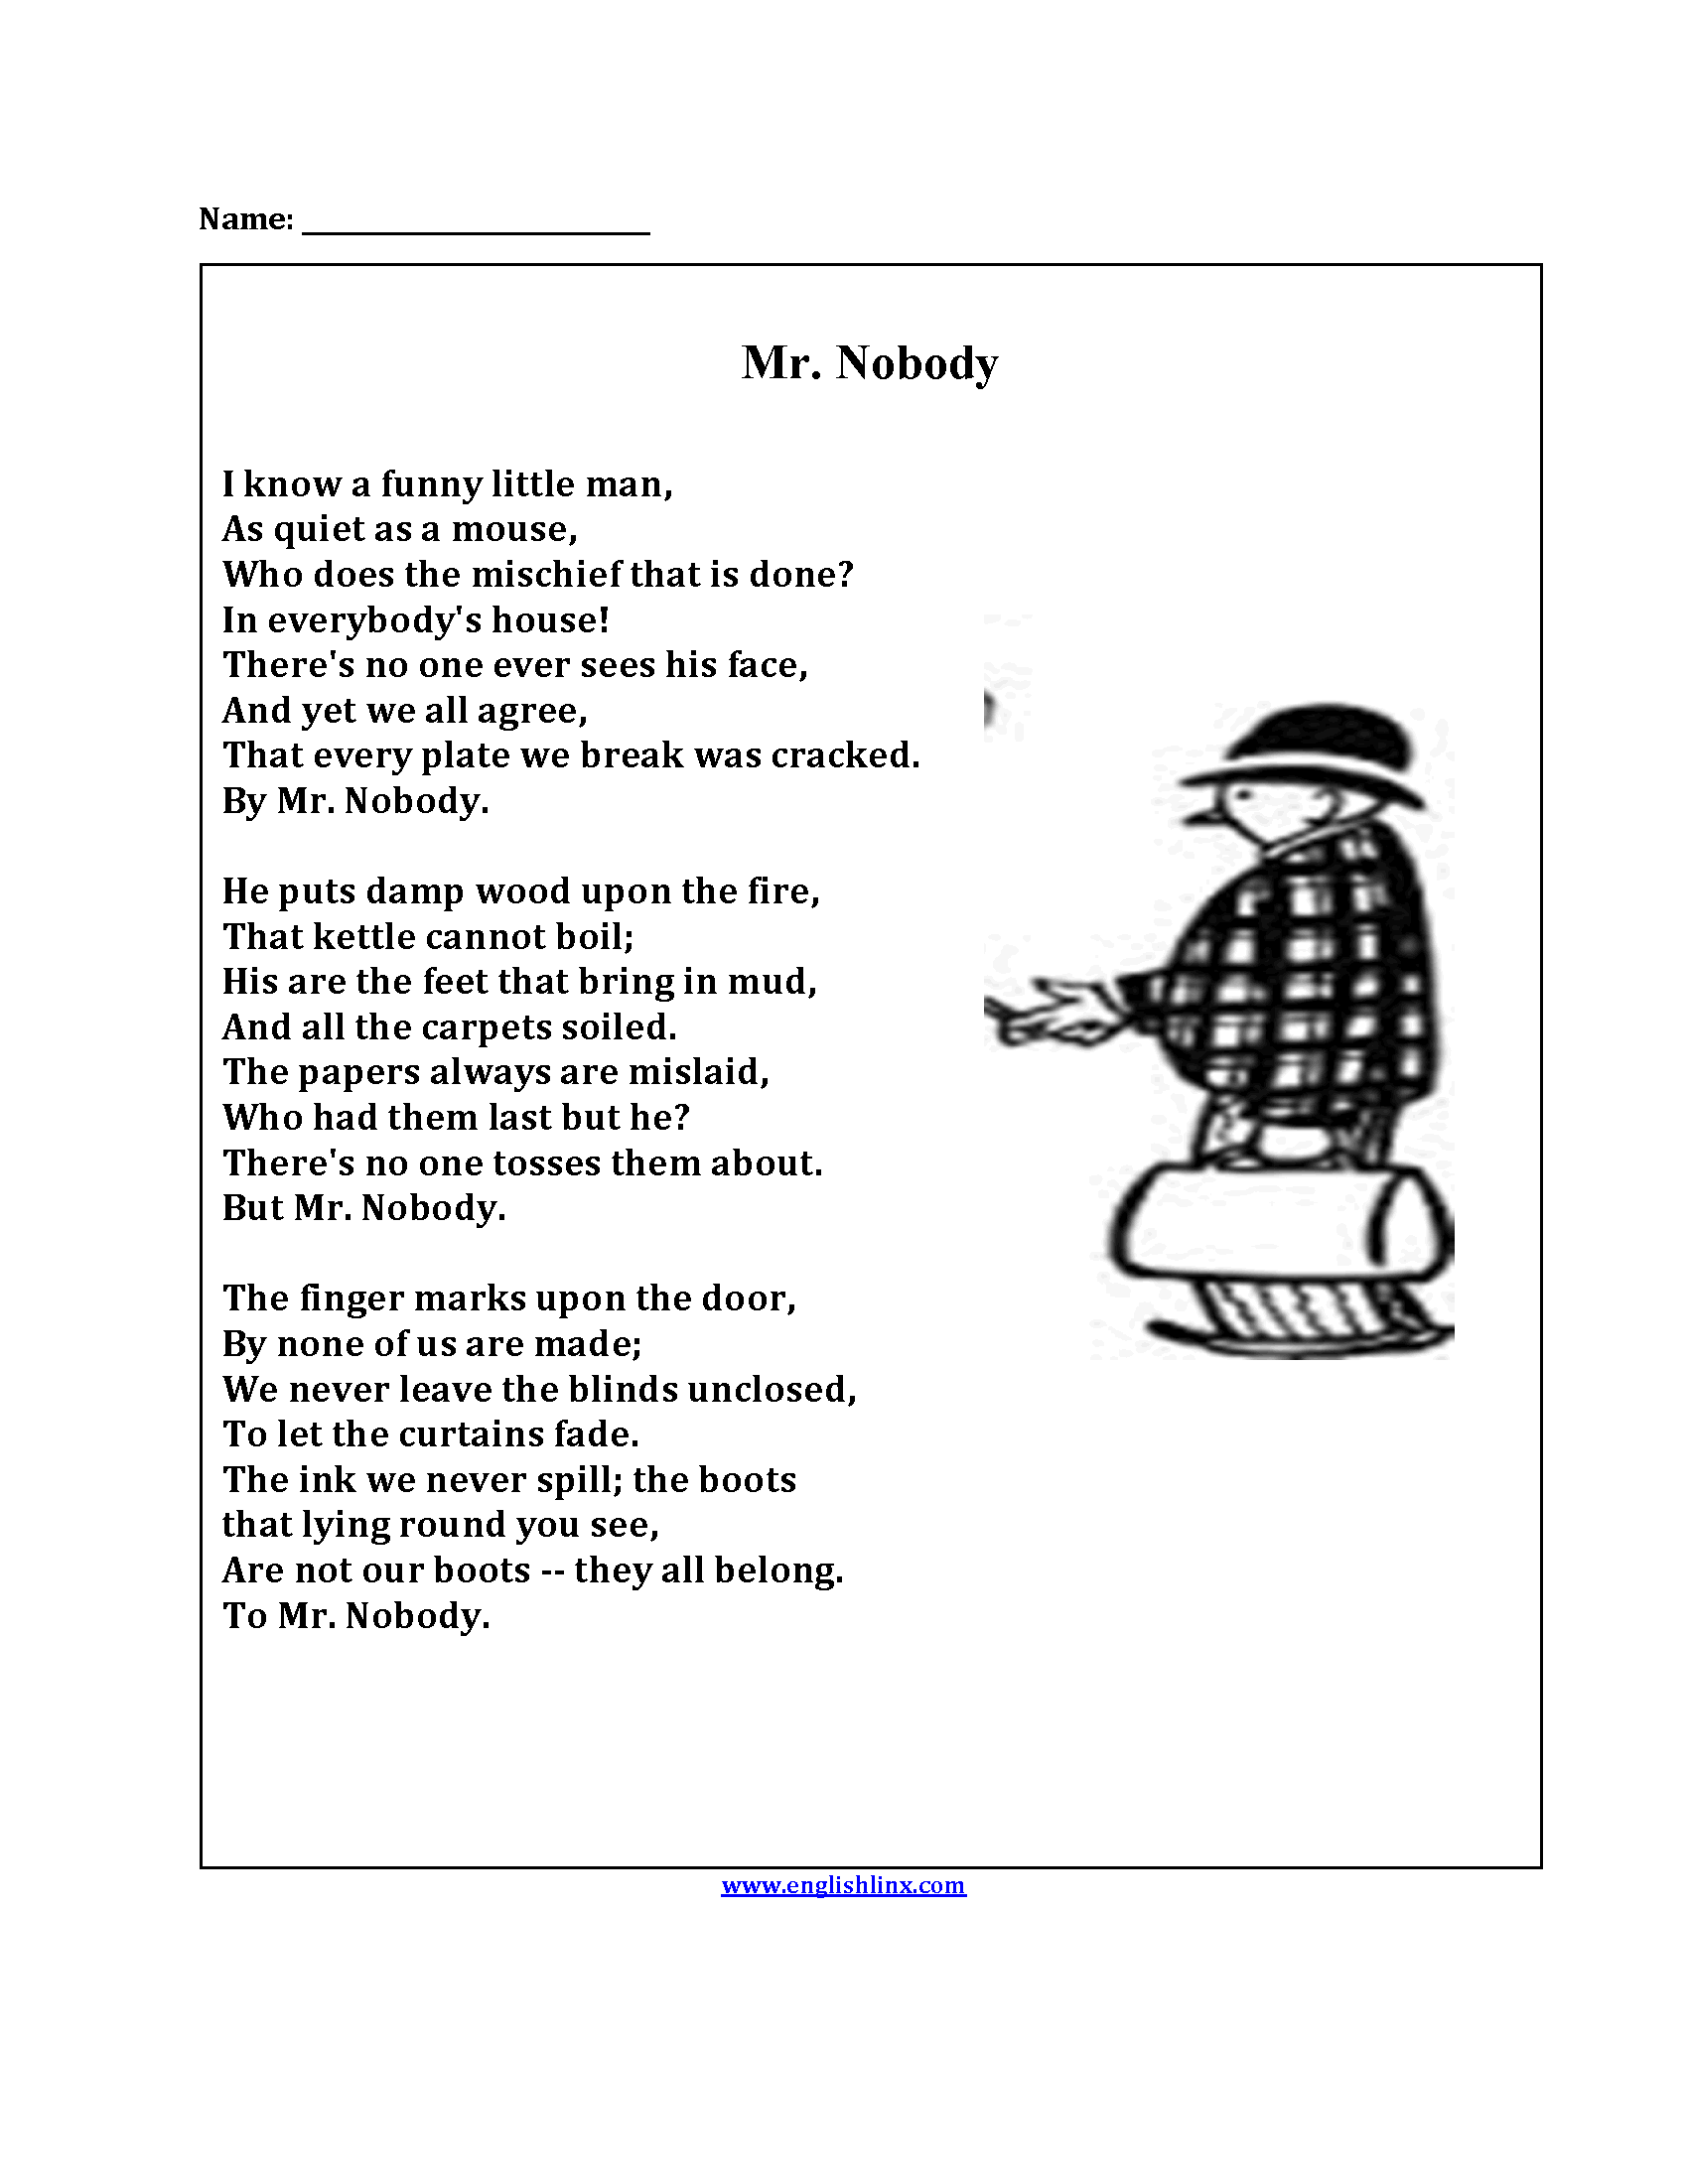 Mr. Nobody Poetry Worksheets